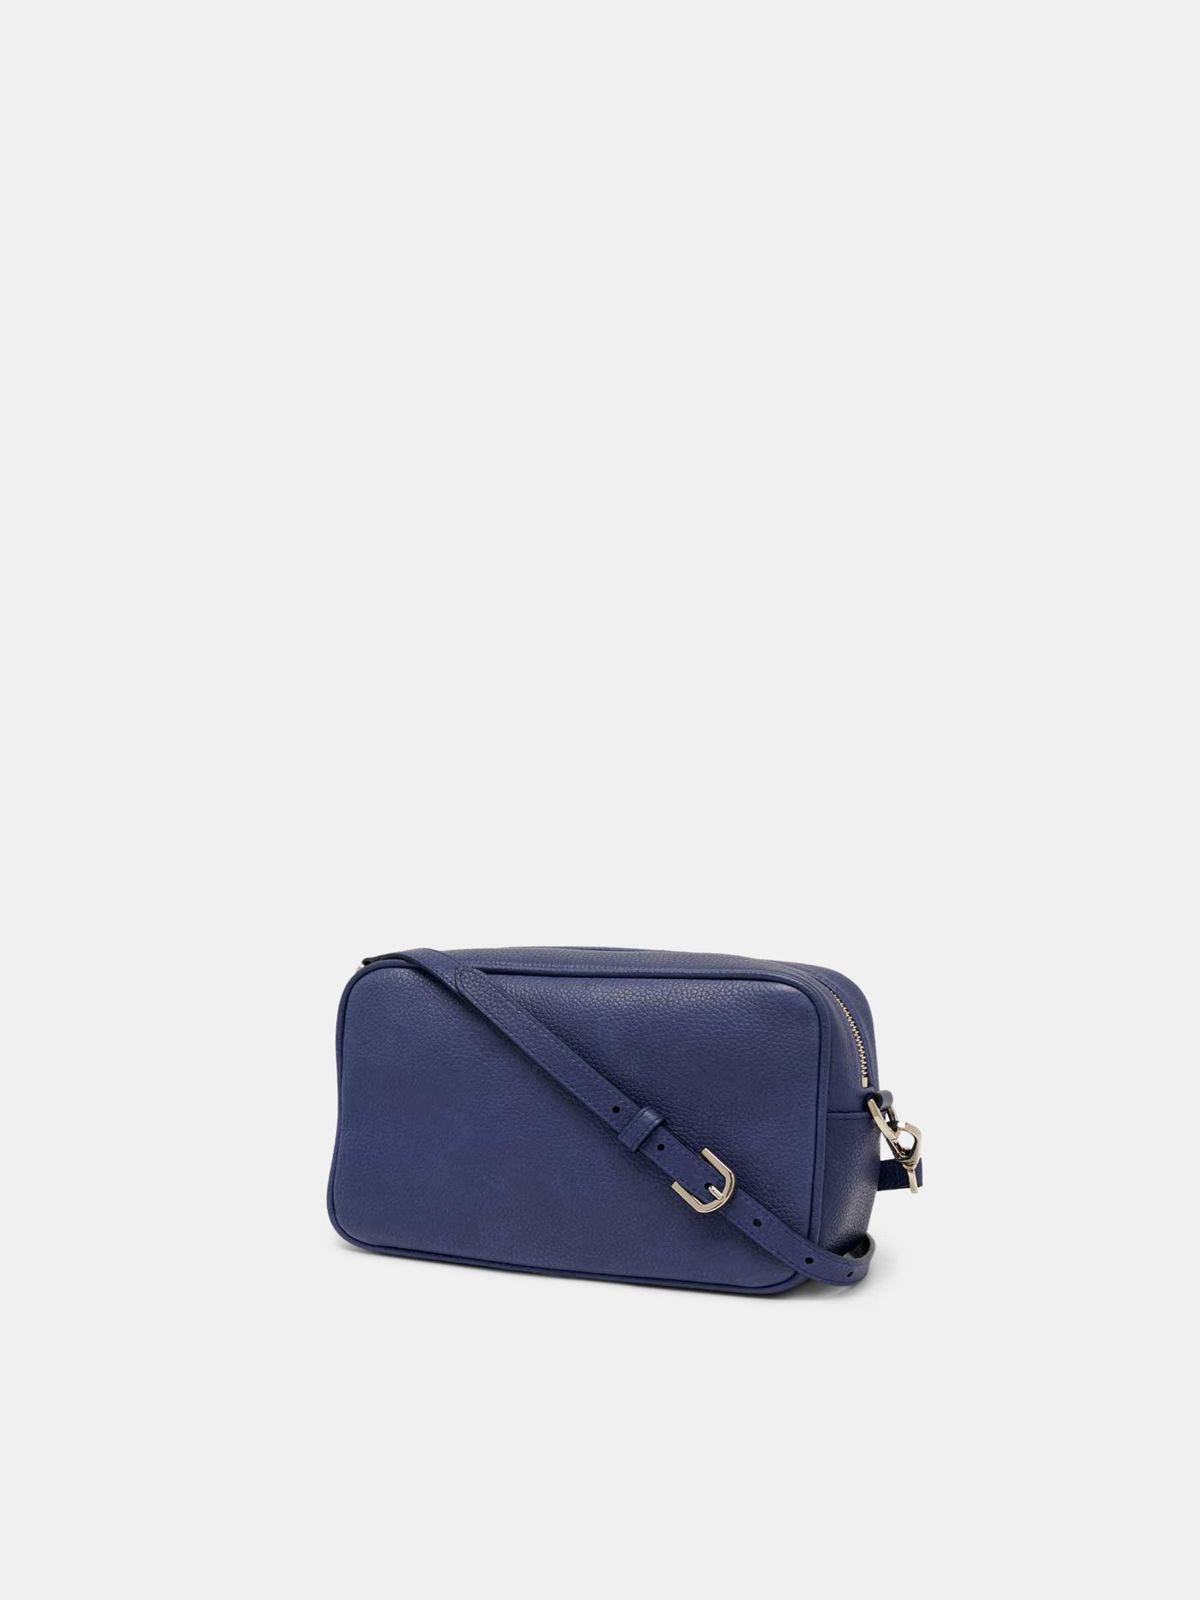 Golden Goose - Blue Star Bag with shoulder strap made of pebbled leather in